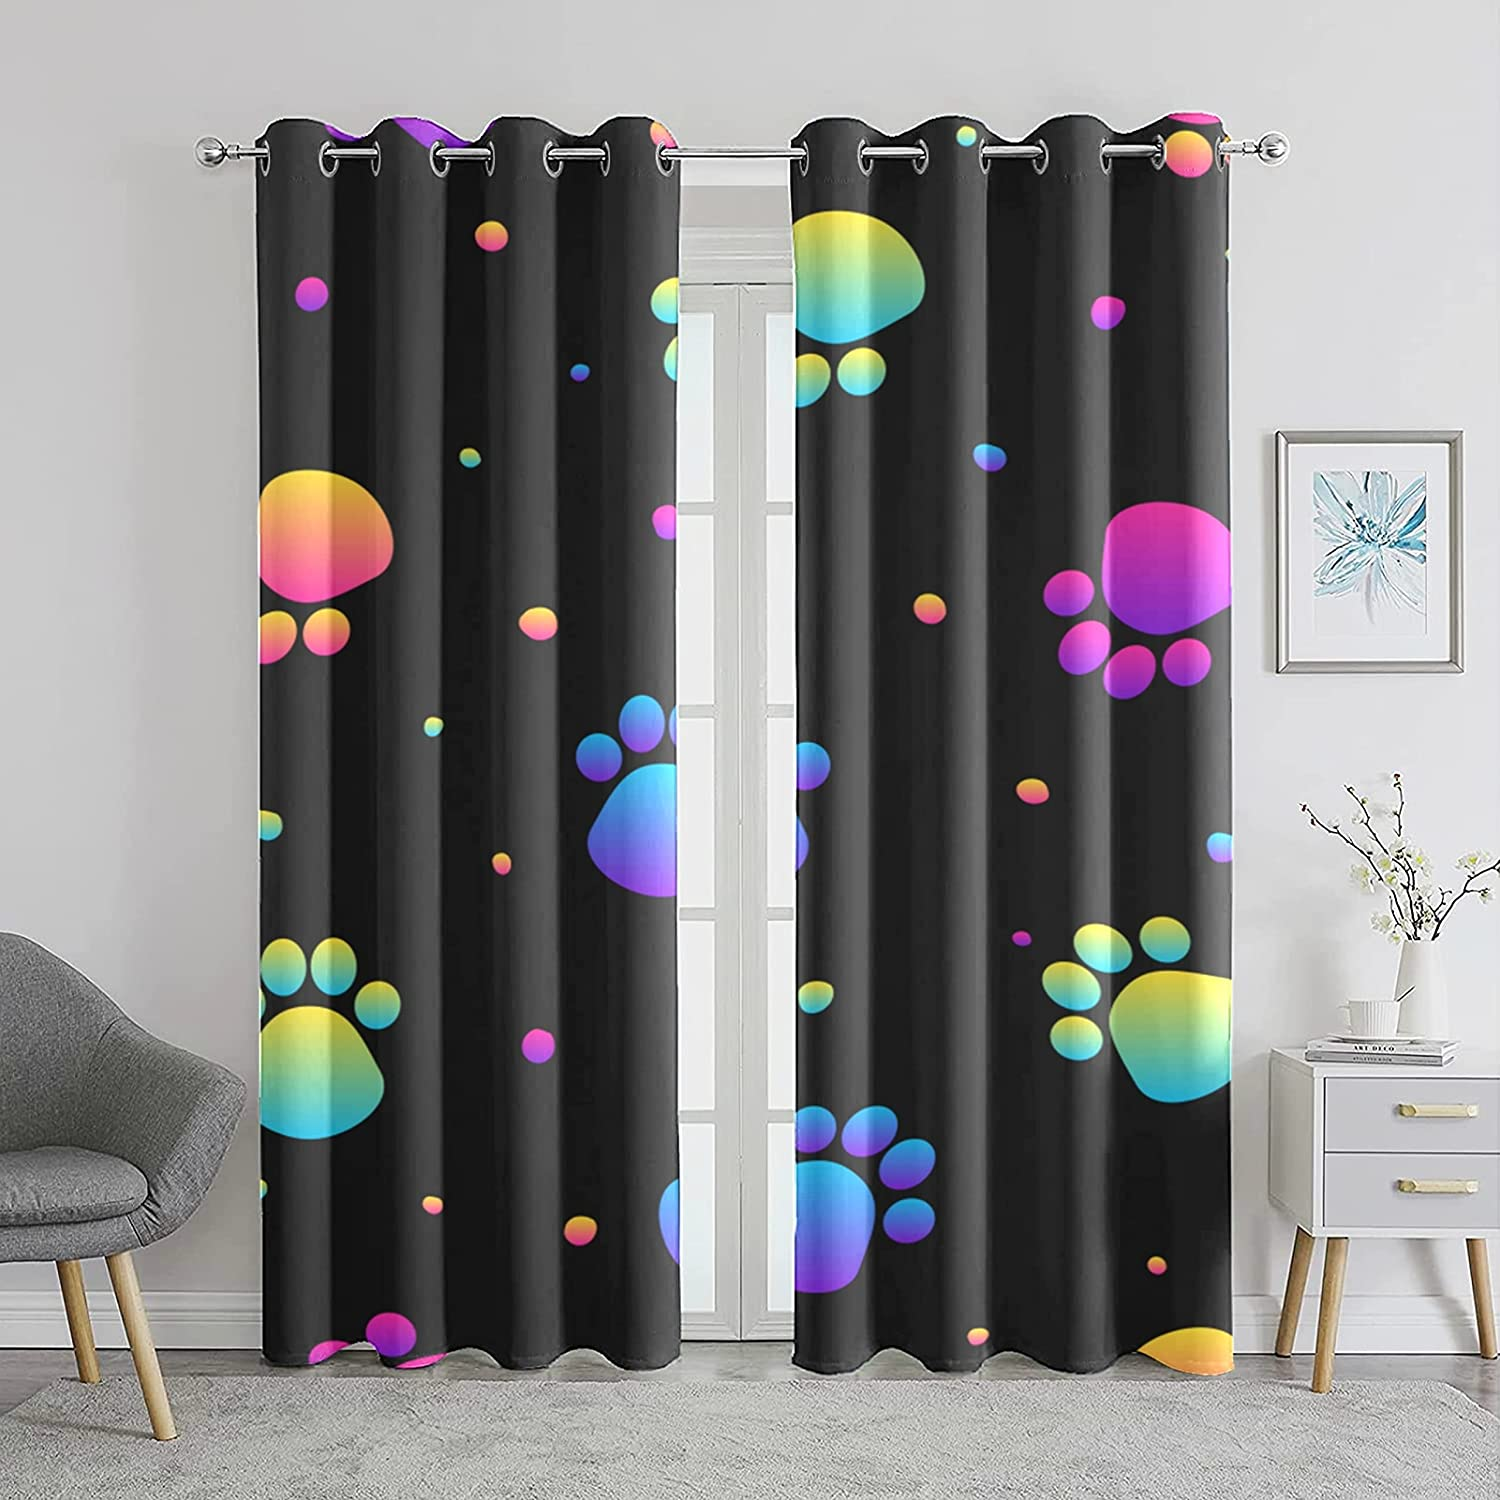 Curtains for Room Max Max 66% OFF 47% OFF Abstract Rainbow Seamless Stylis Swatch Modern